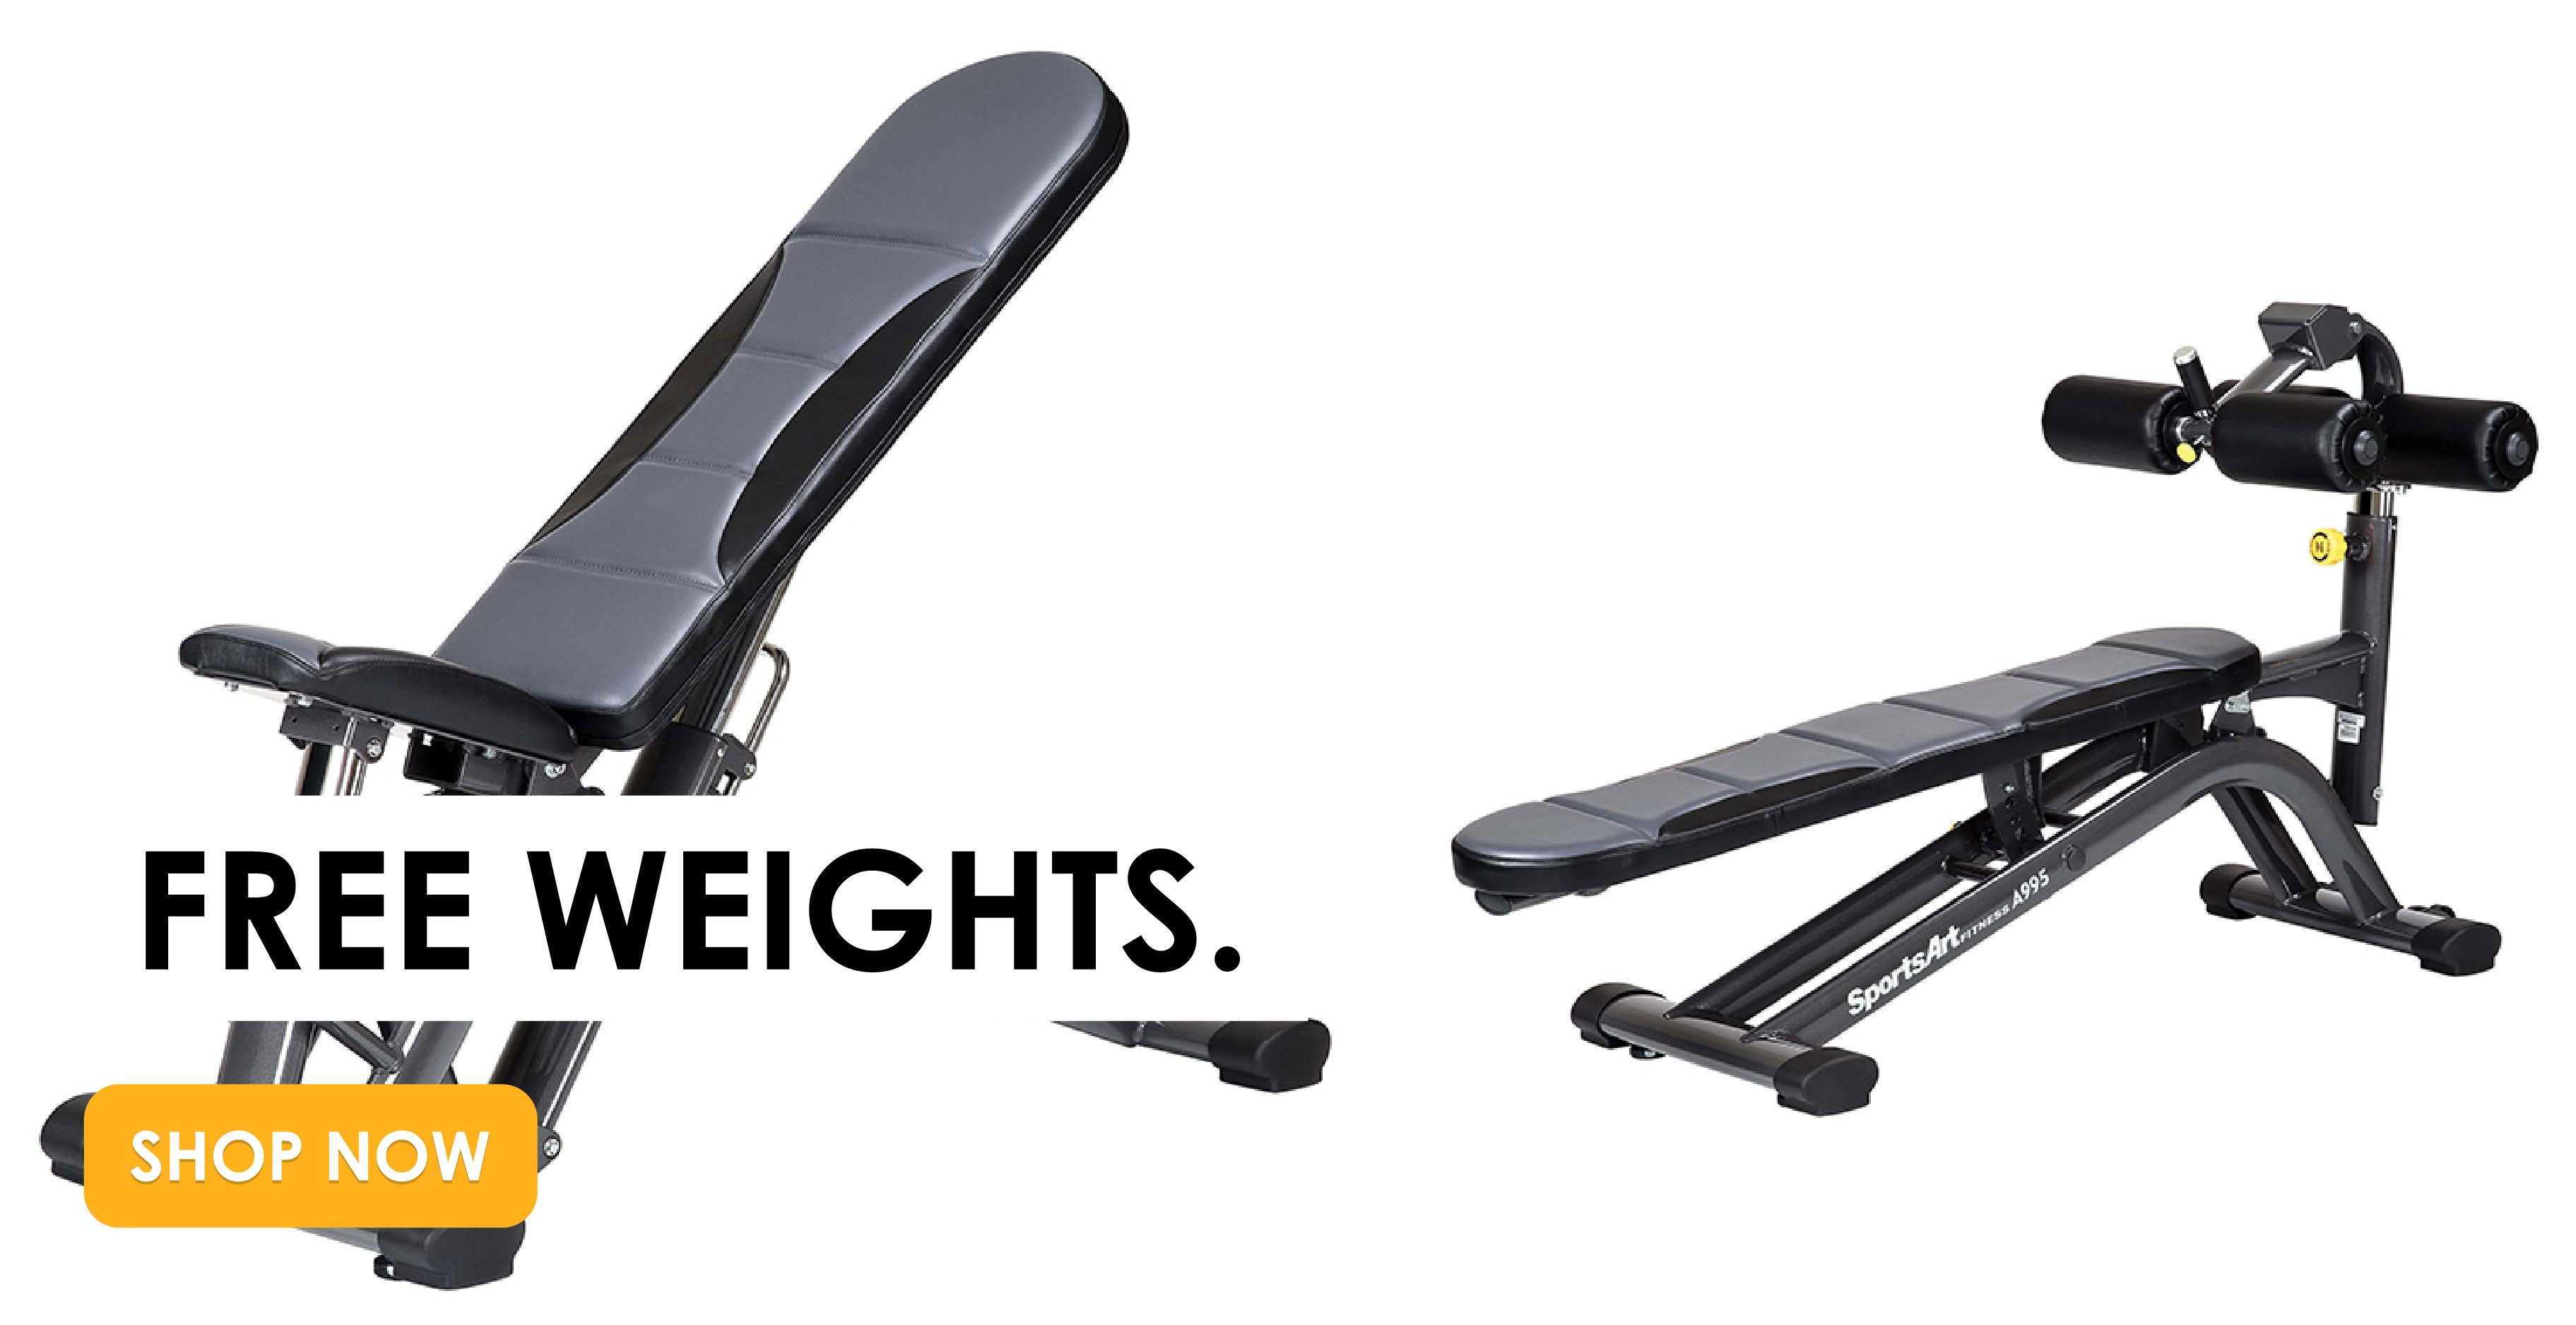 Free Weight Gym Equipment